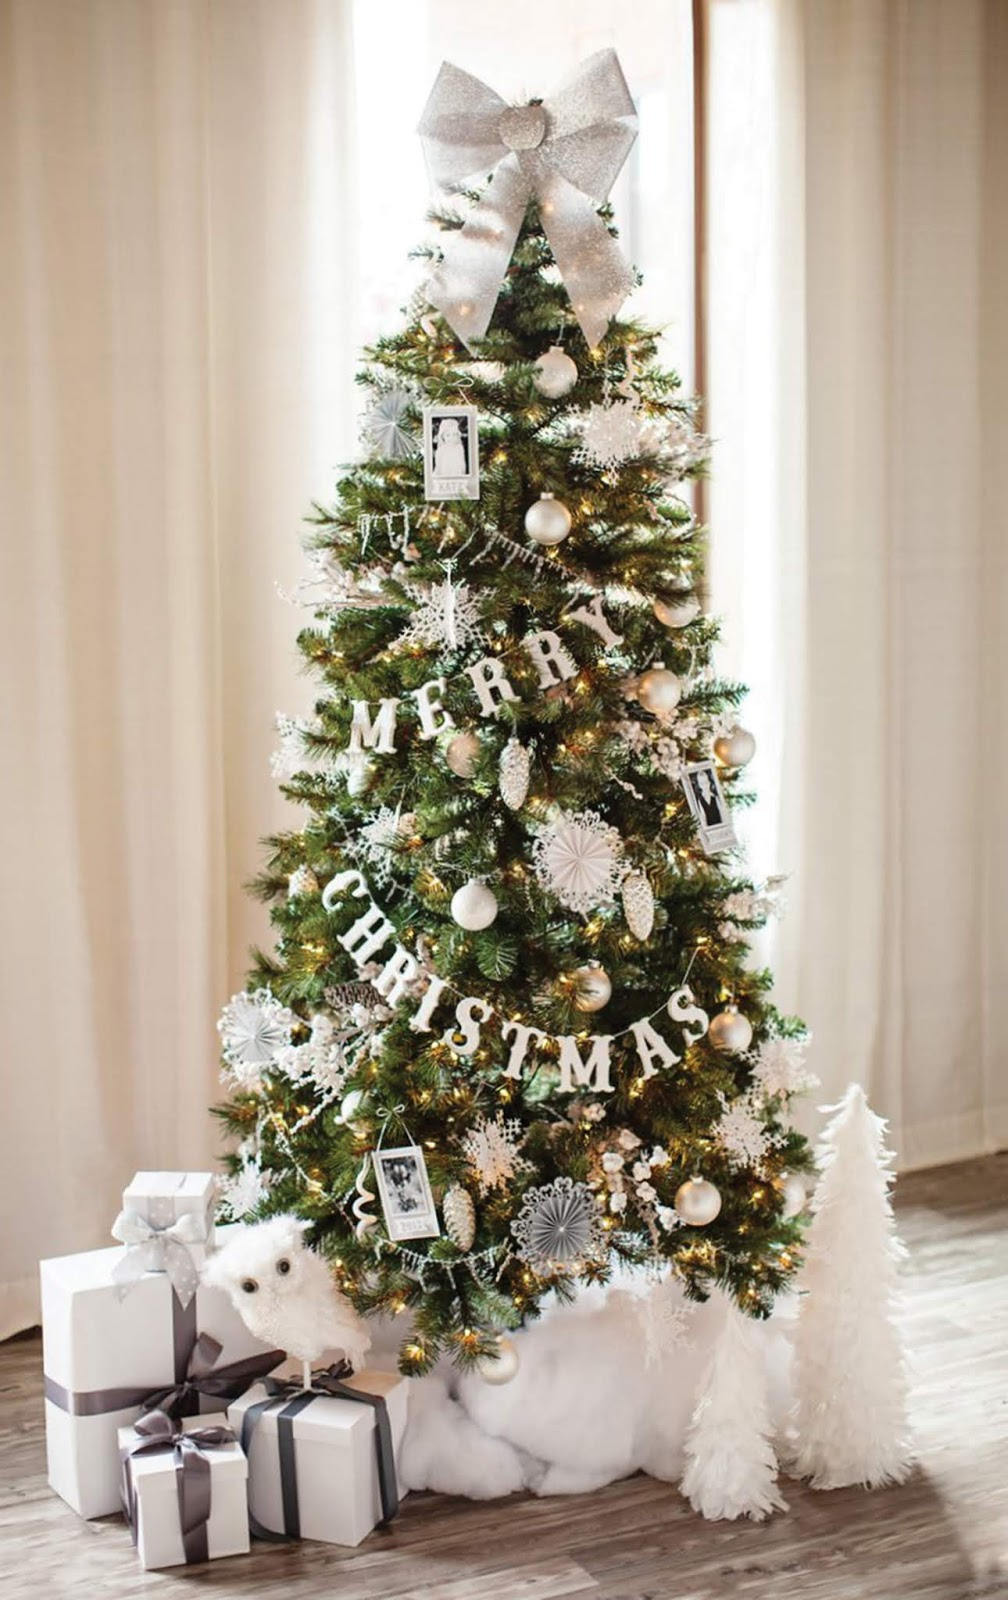 Most amazing Christmas decorated trees for some holiday sparkle